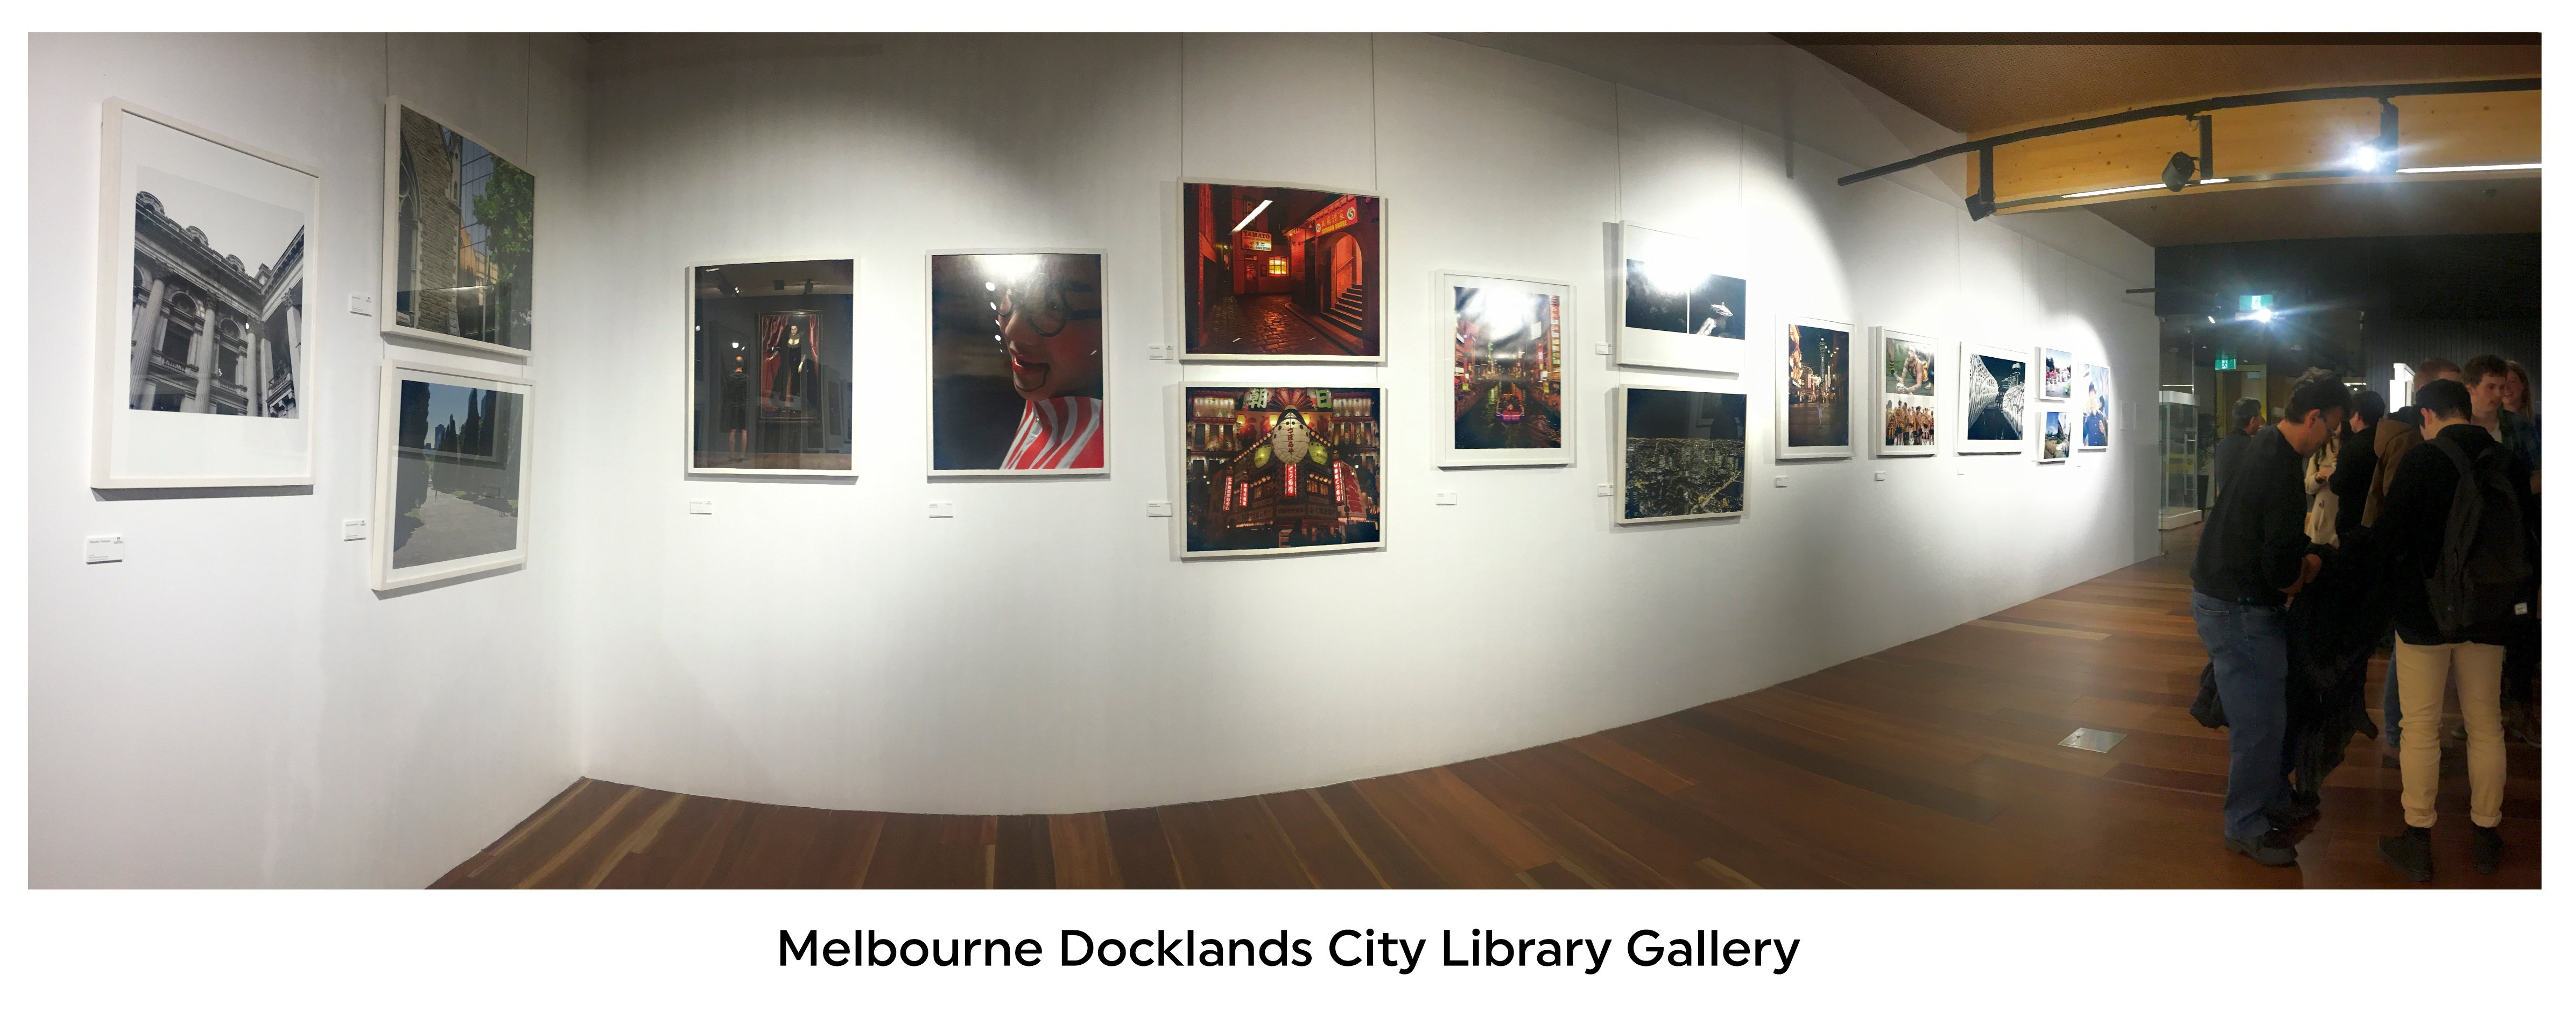 DockLibrary-1